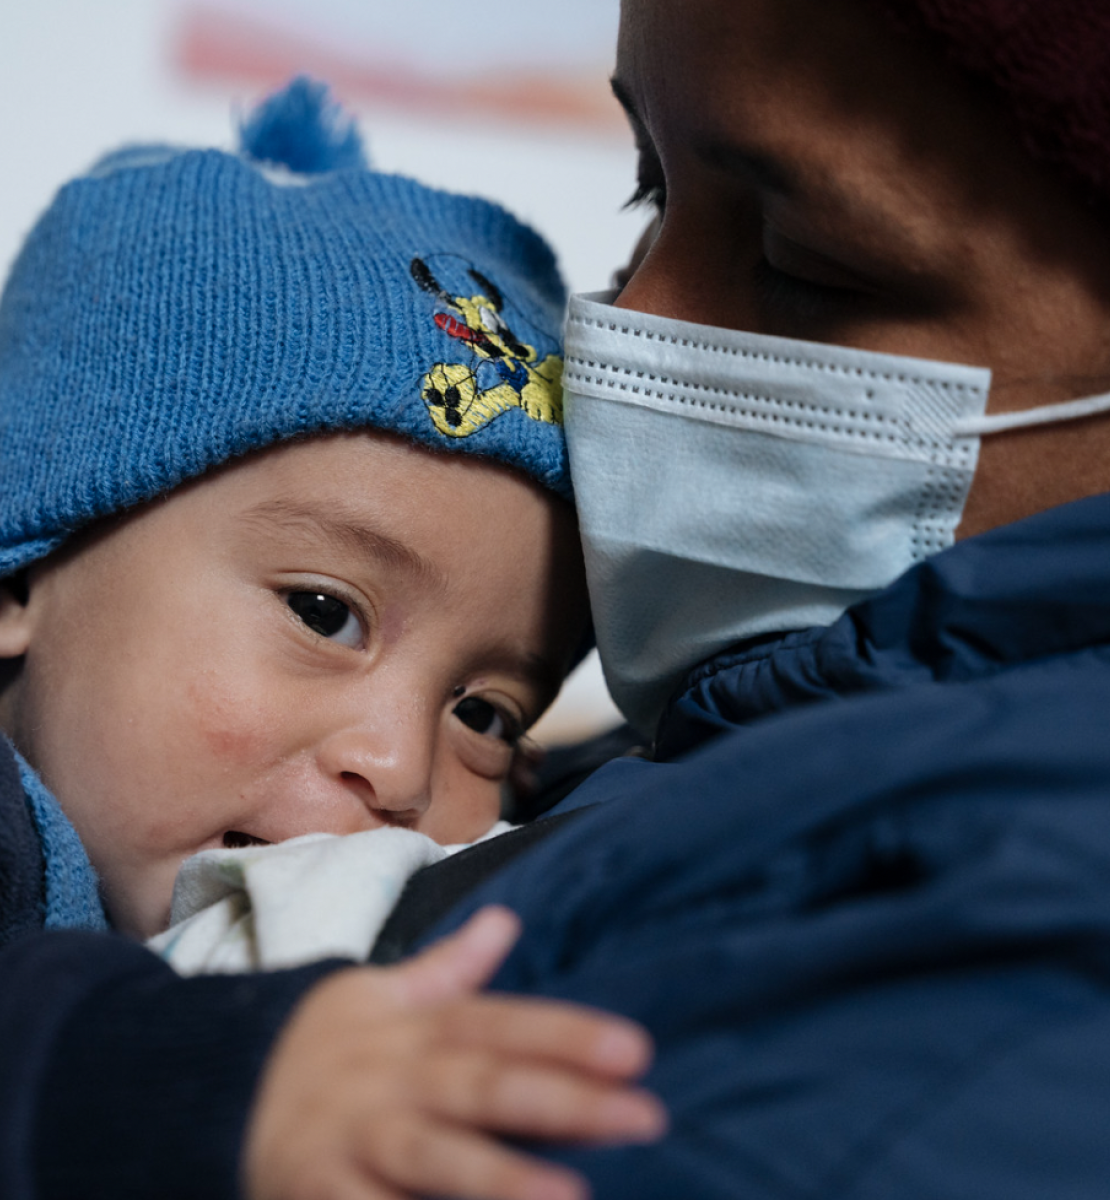 A baby in a blue hat rests on his mother who is wearing a face mask.